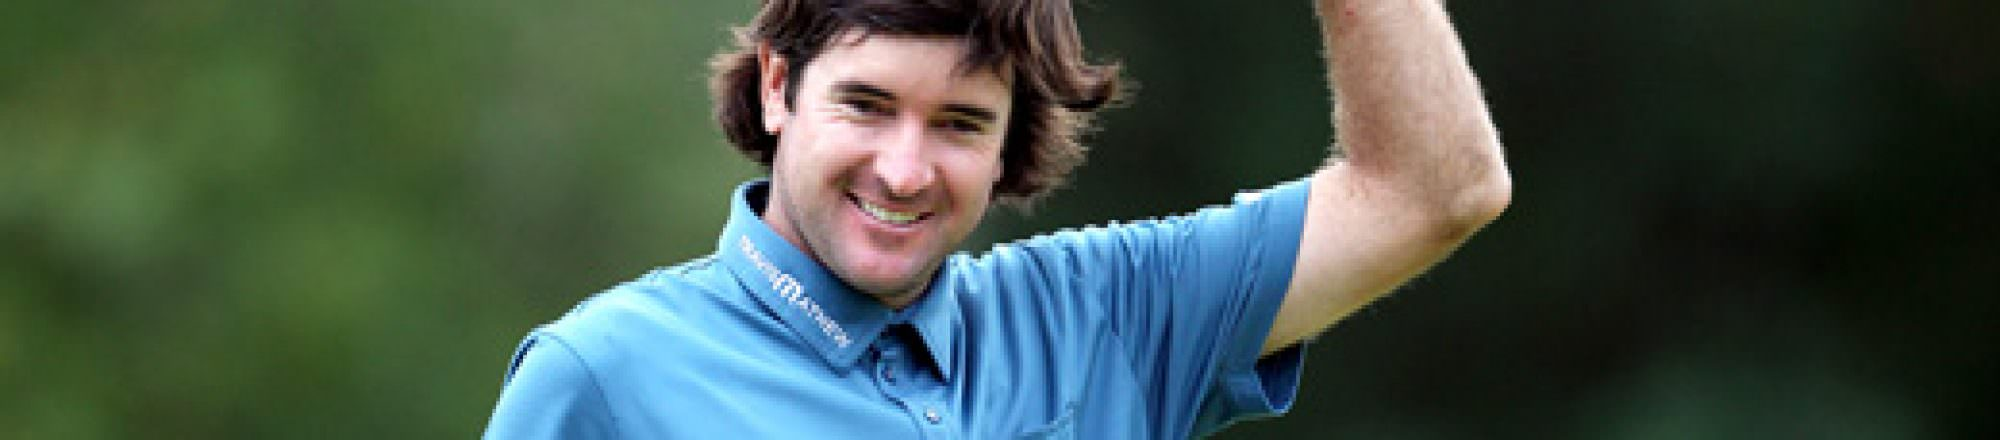 21 things you didn't know about Bubba Watson